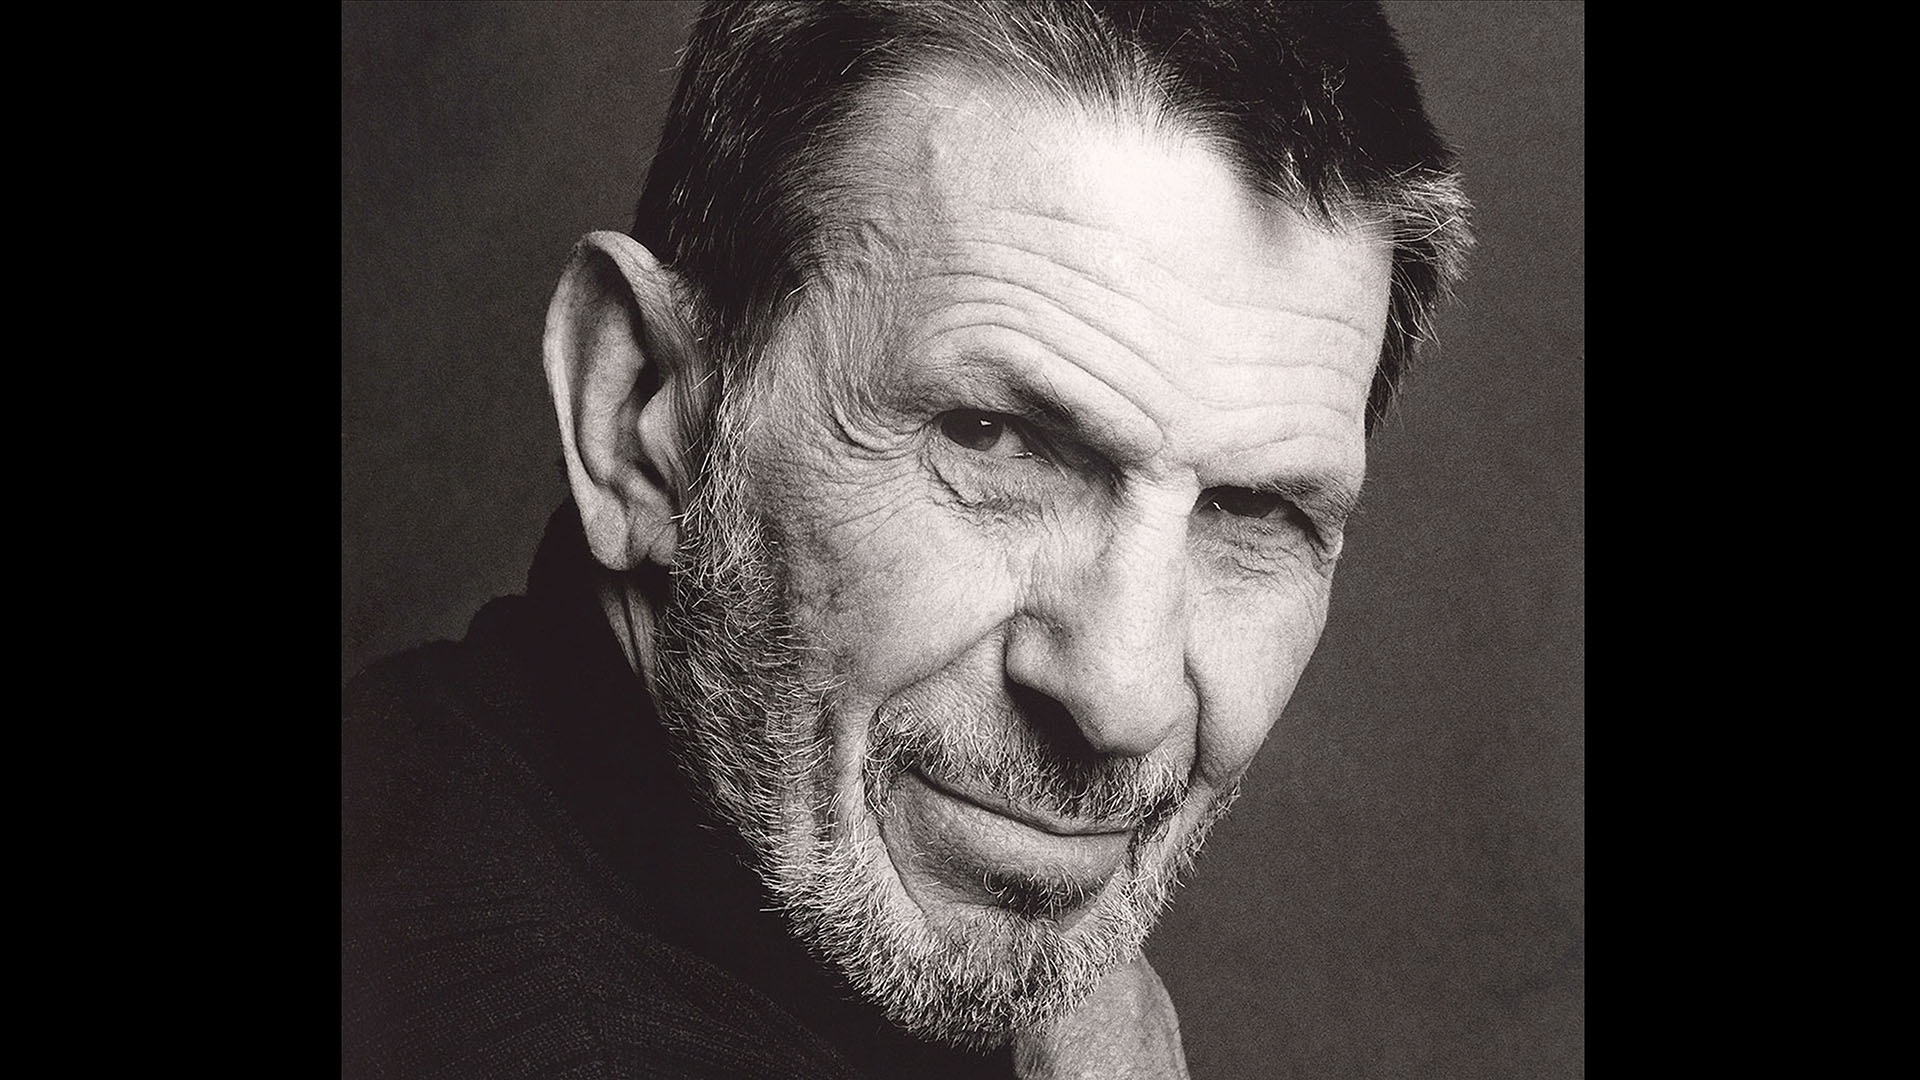 Leonard Nimoy, Self Assignment, November 1, 2003